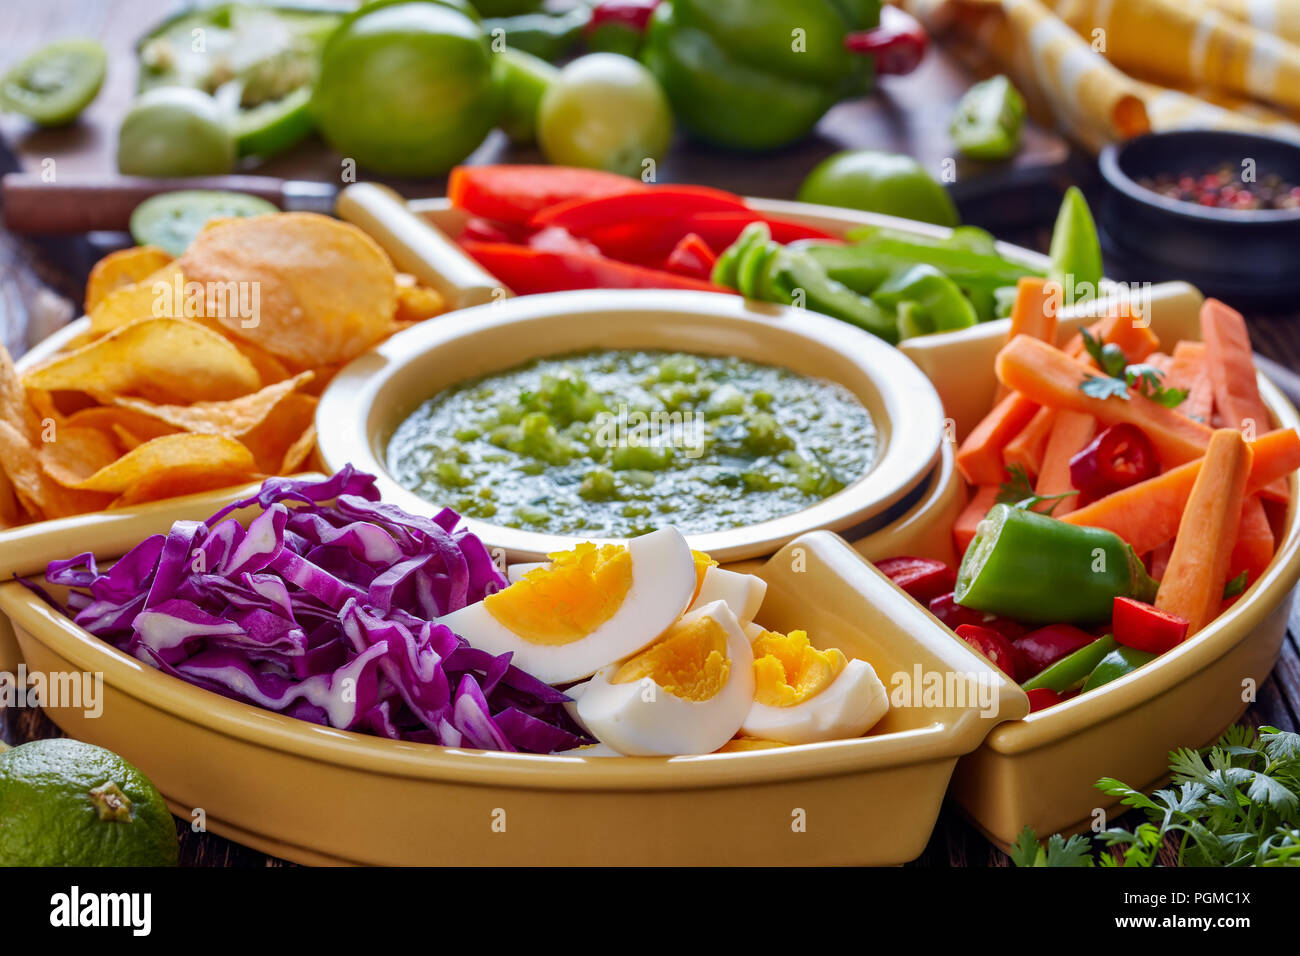 green salsa verde and mexican set for tacos consist of chopped fresh vegetables, hard boiled eggs and chips in bowls on old rustic wooden table with i Stock Photo